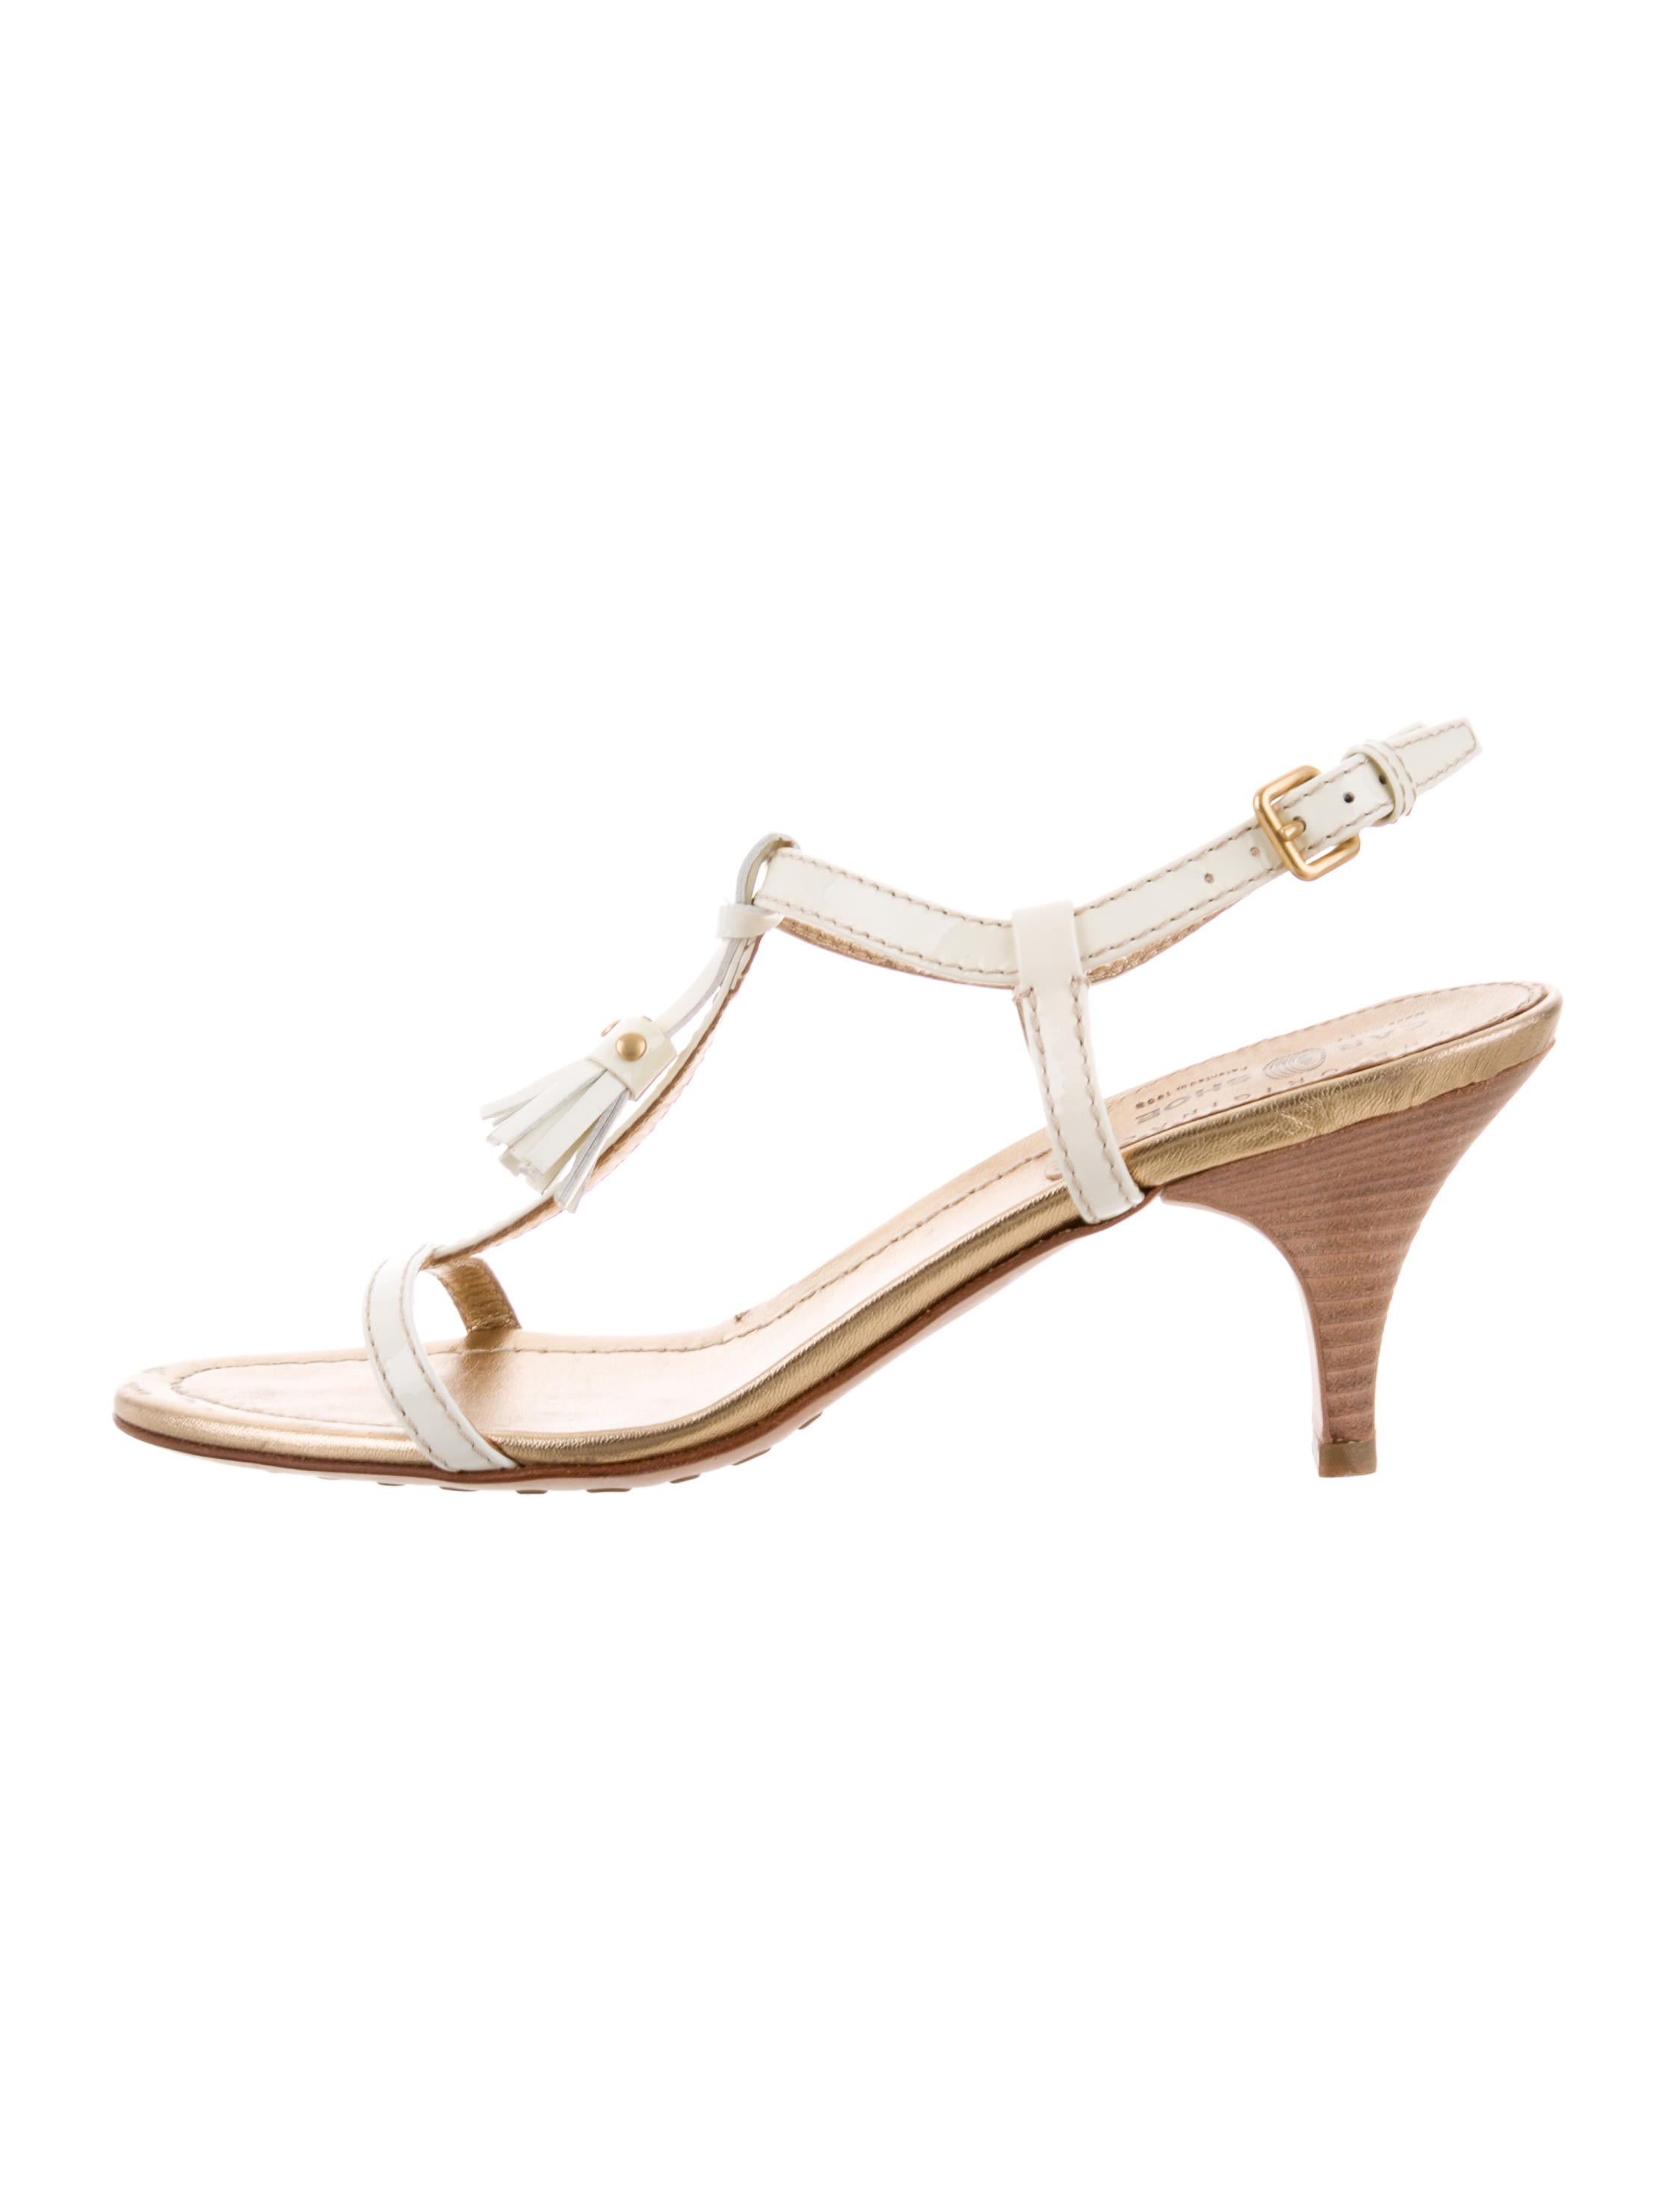 Car Shoe Tassel-Embellished Patent Leather Sandals cheap sale shopping online cheap fashion Style cheap huge surprise clearance with paypal b4YA7QH5Z